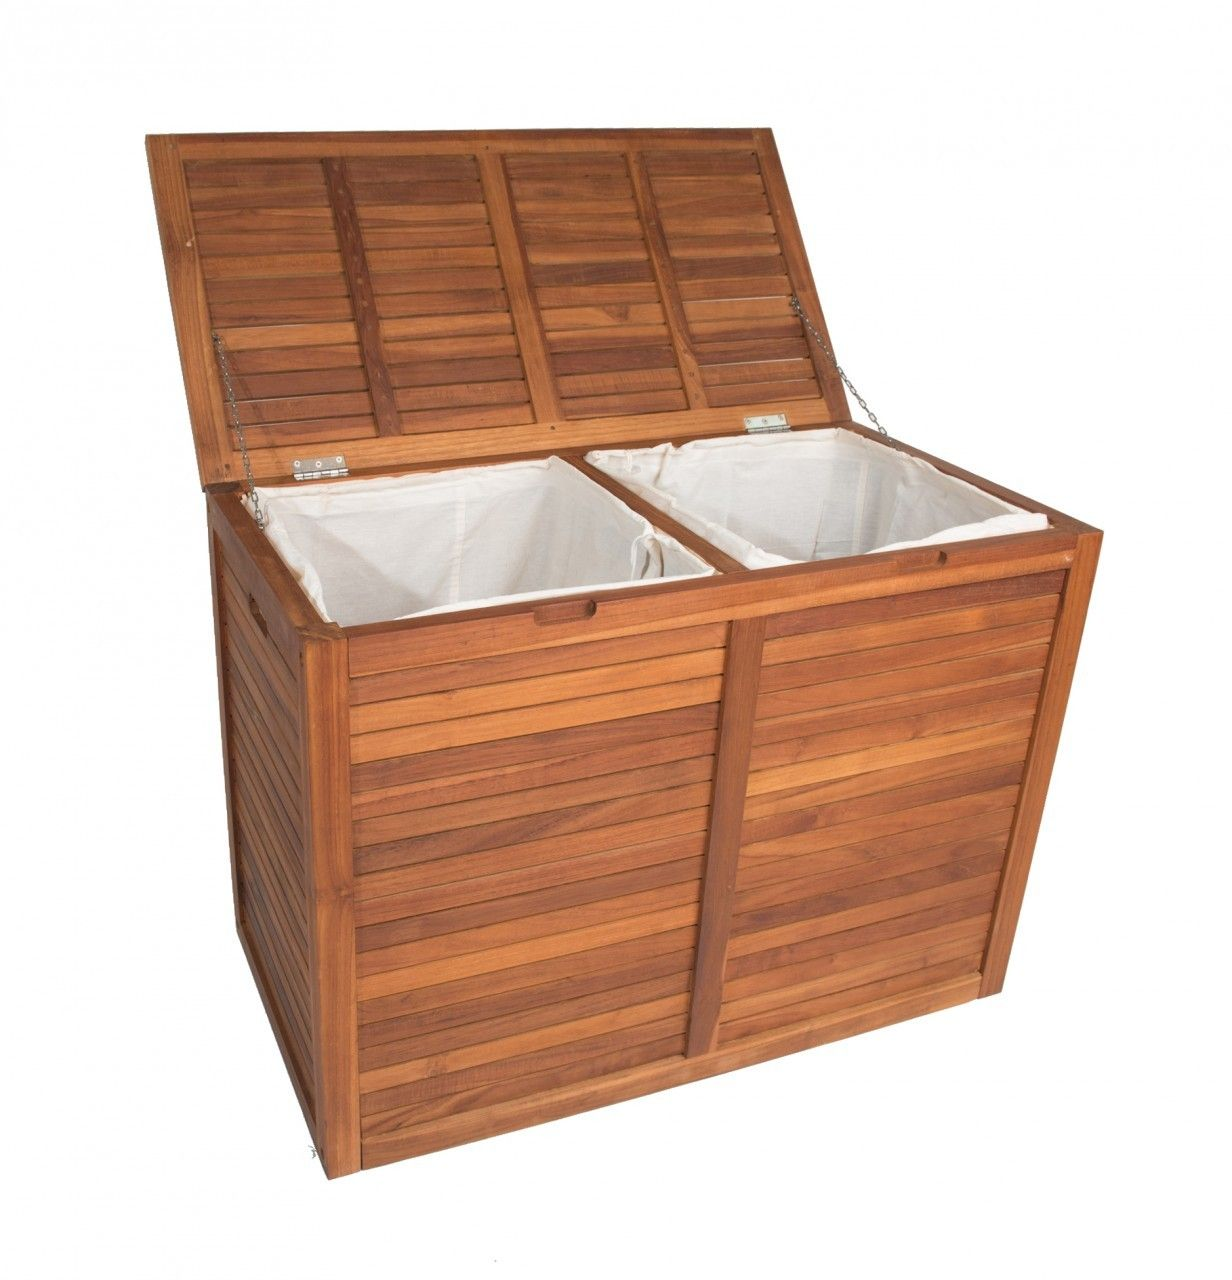 The Original Nila Large Size Double Teak Laundry Or Storage